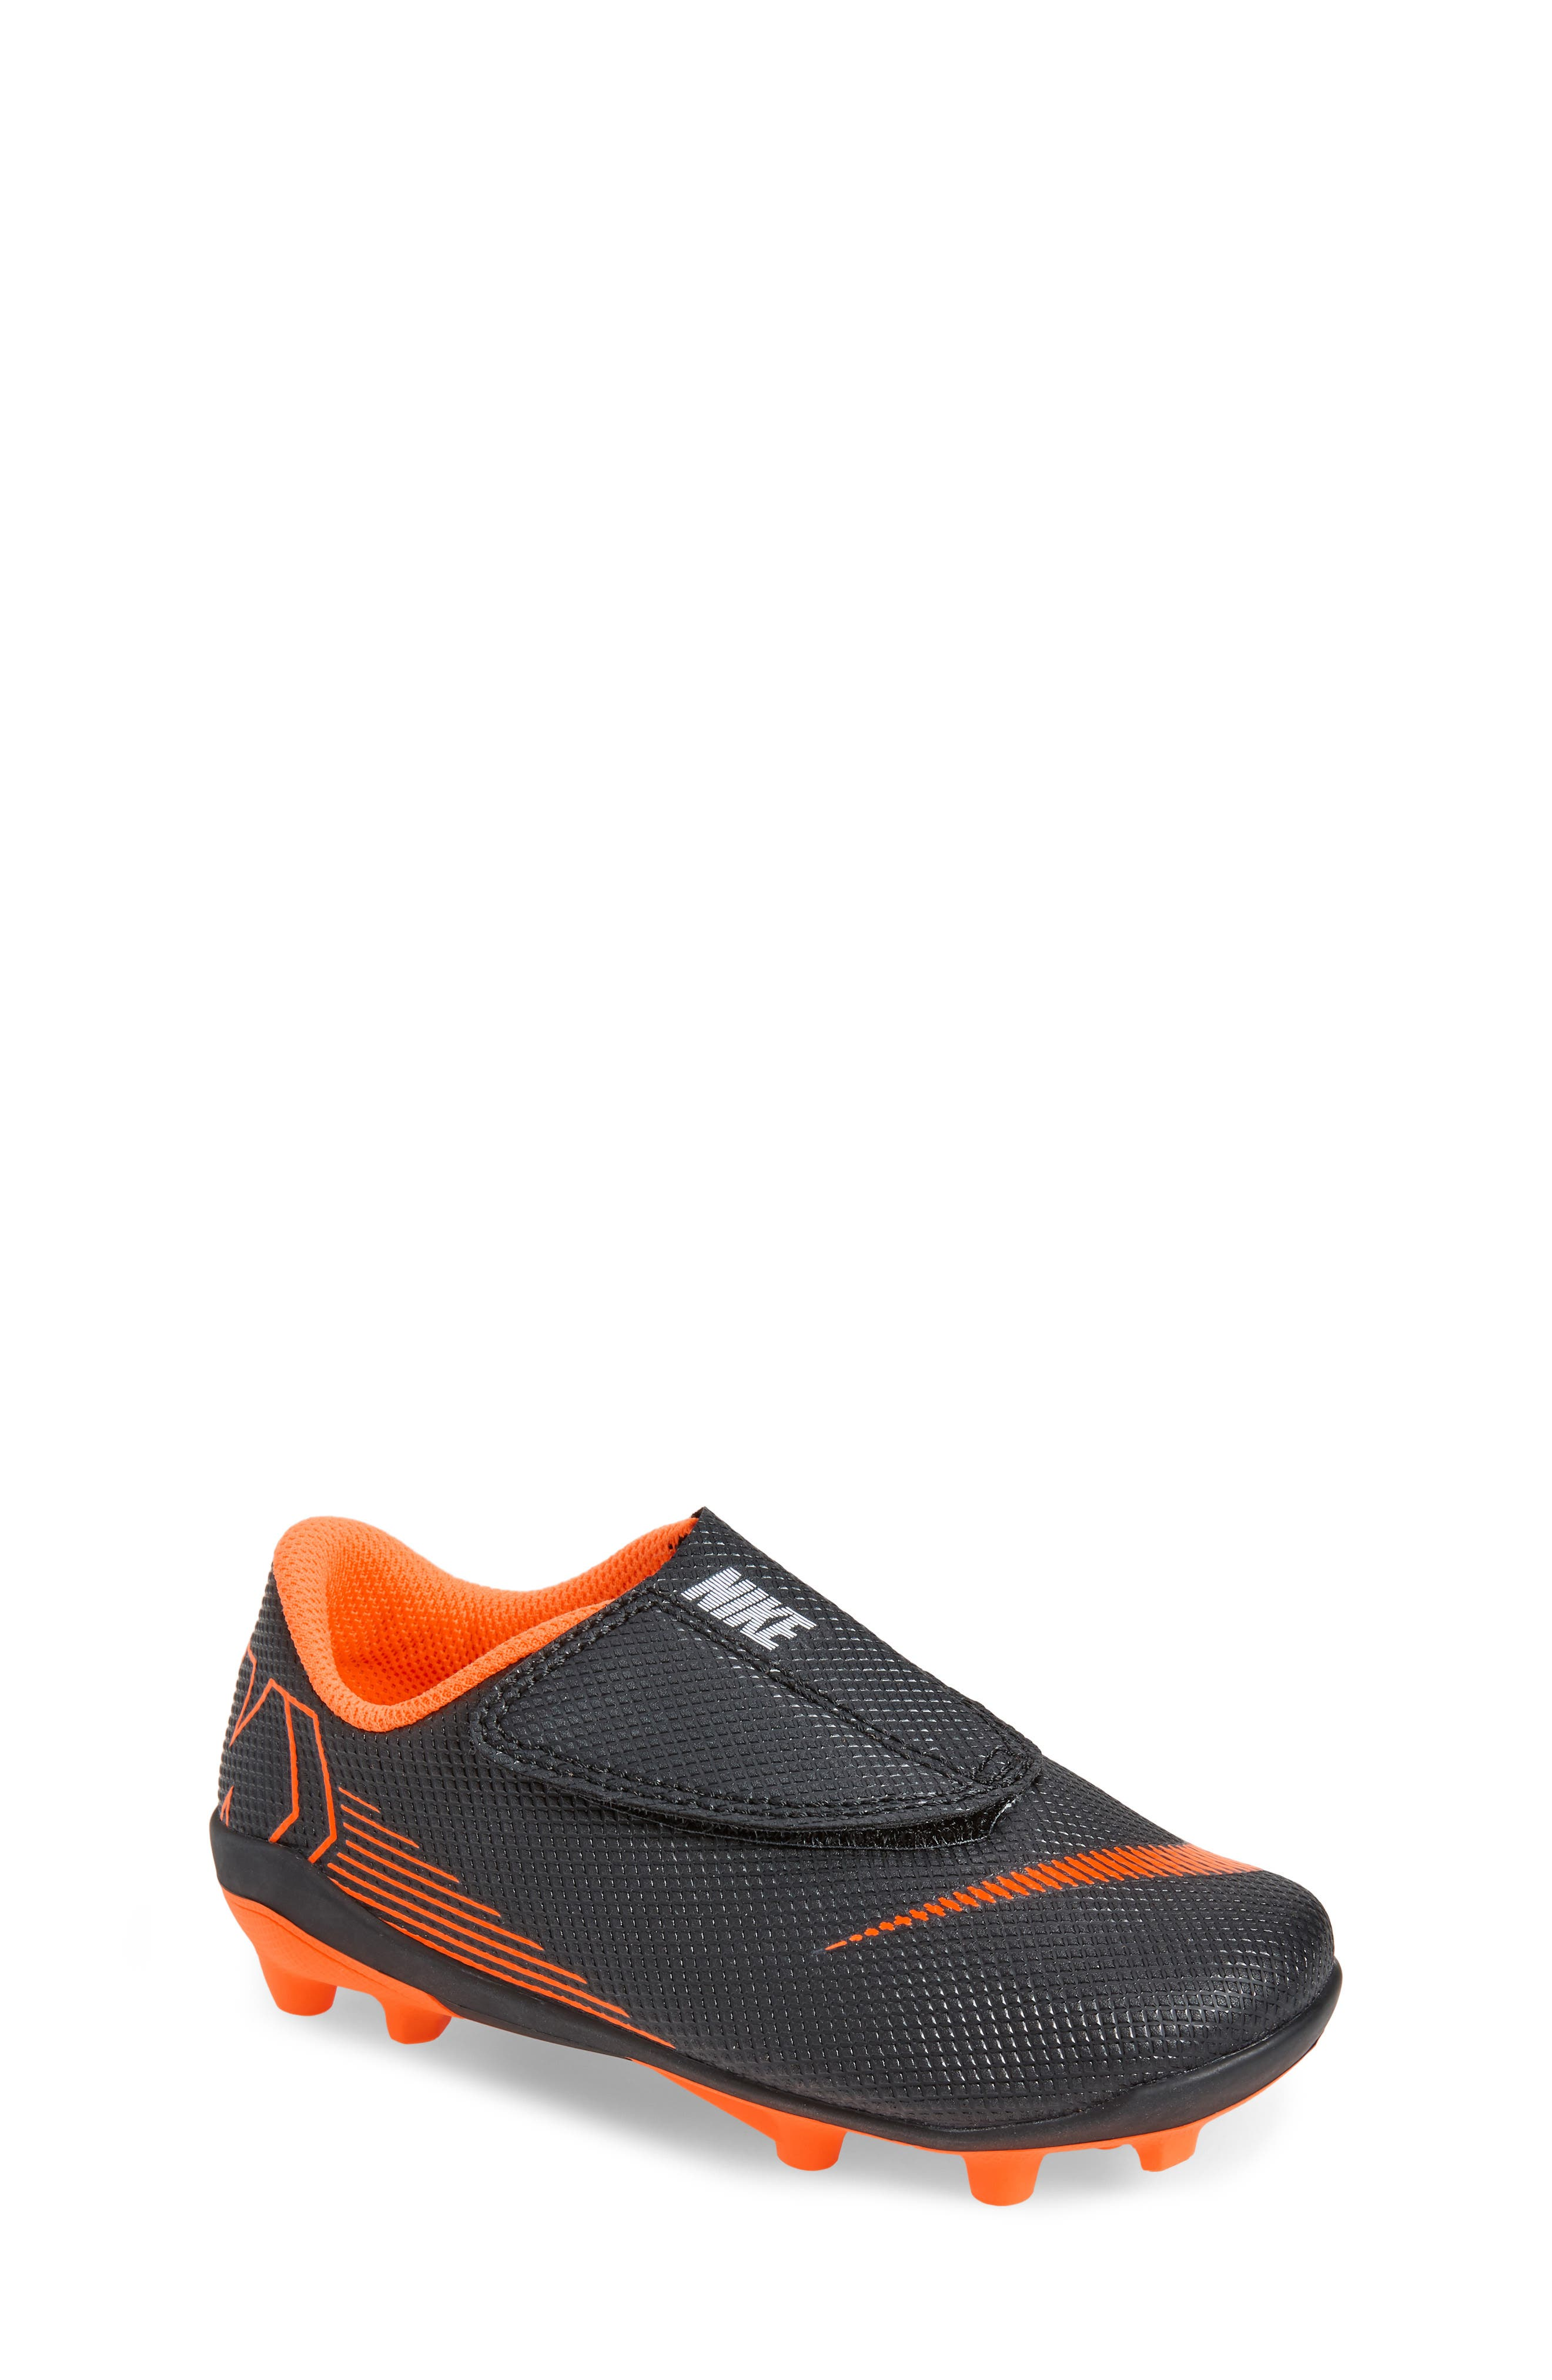 Tiempo Legend 7 Club Firm Ground Soccer Cleat,                             Main thumbnail 1, color,                             Black/ Total Orange/ White